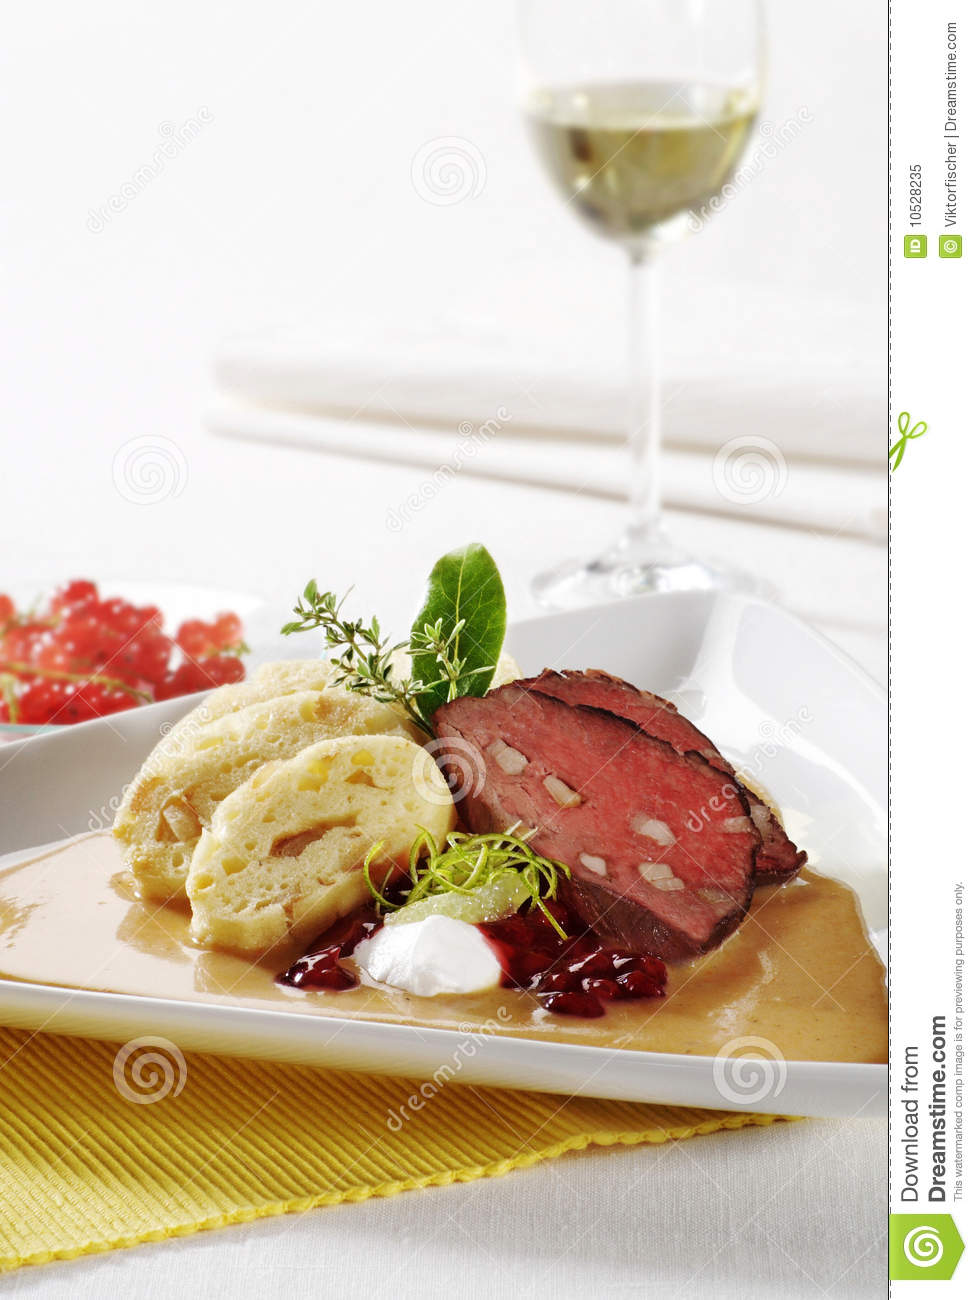 Beef with cream sauce and bread dumplings